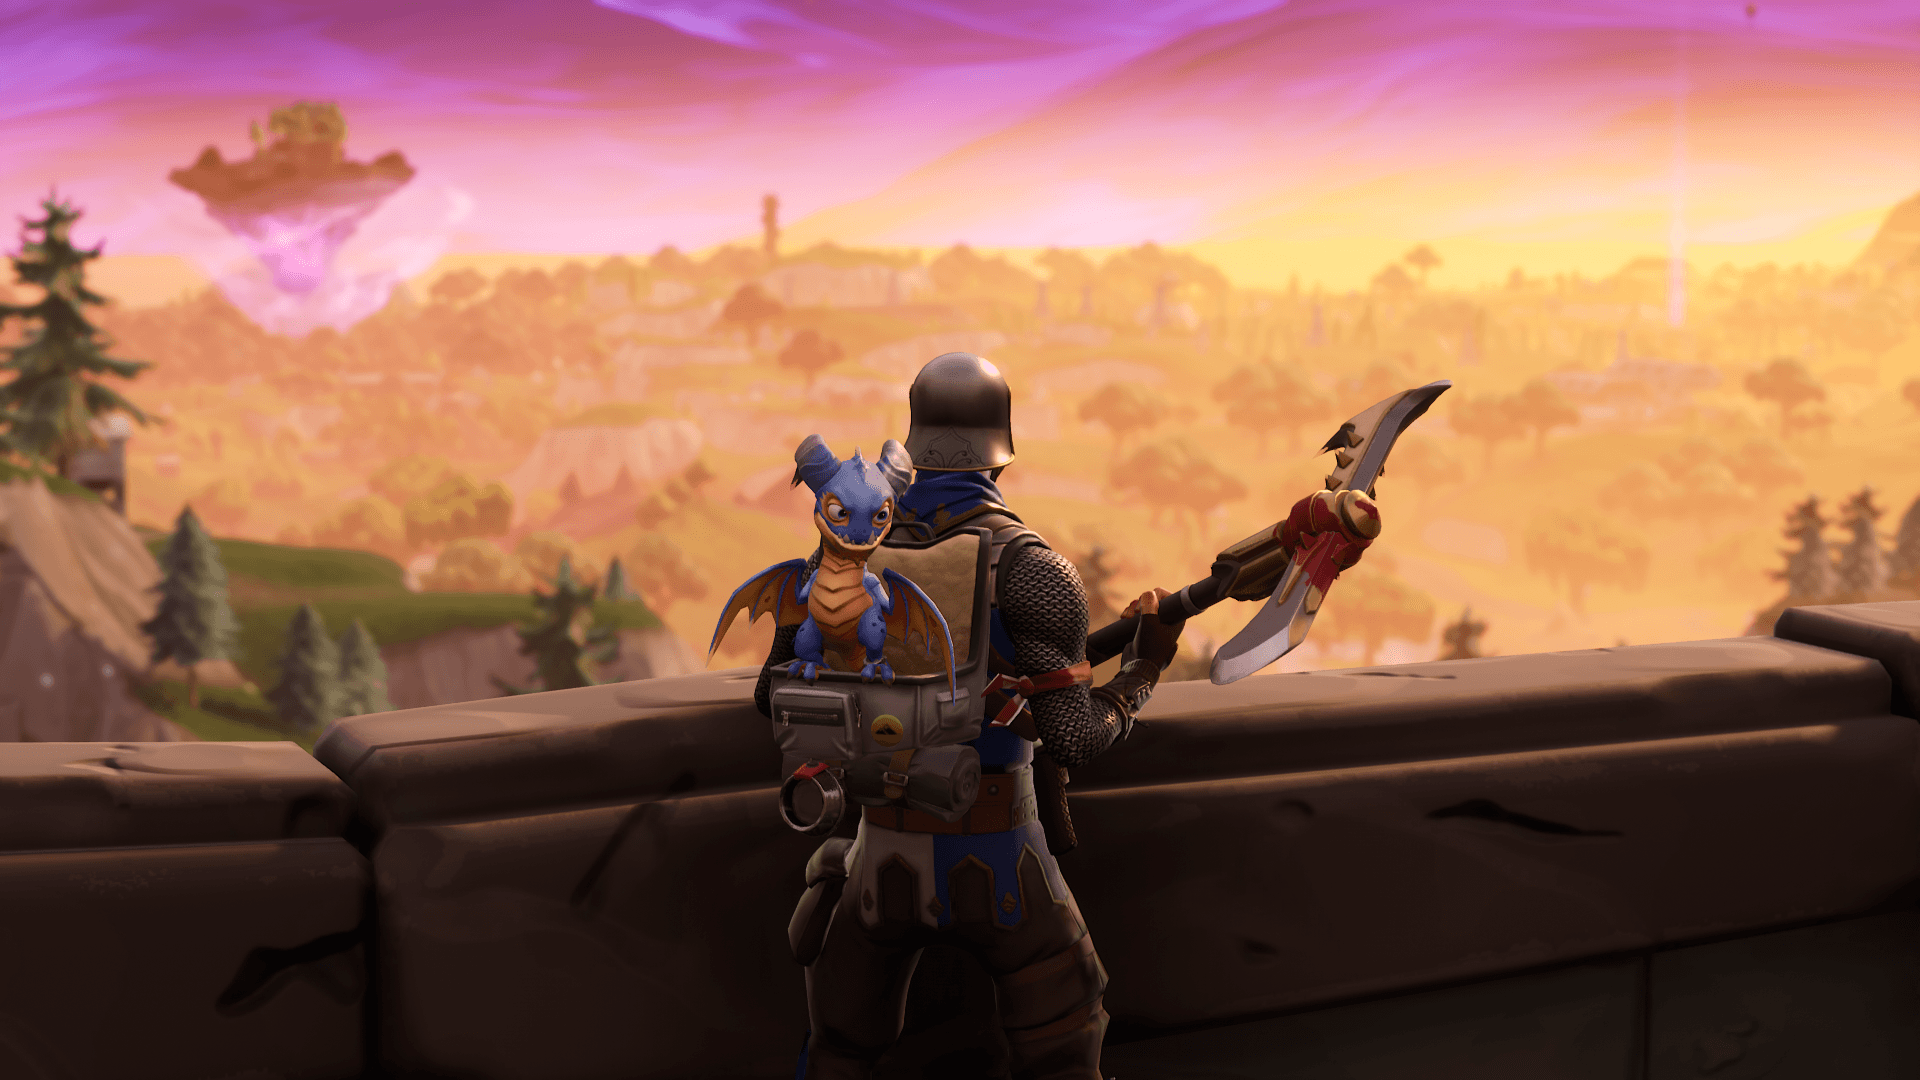 Blue squire and his trusty pet dragon : FortNiteBR